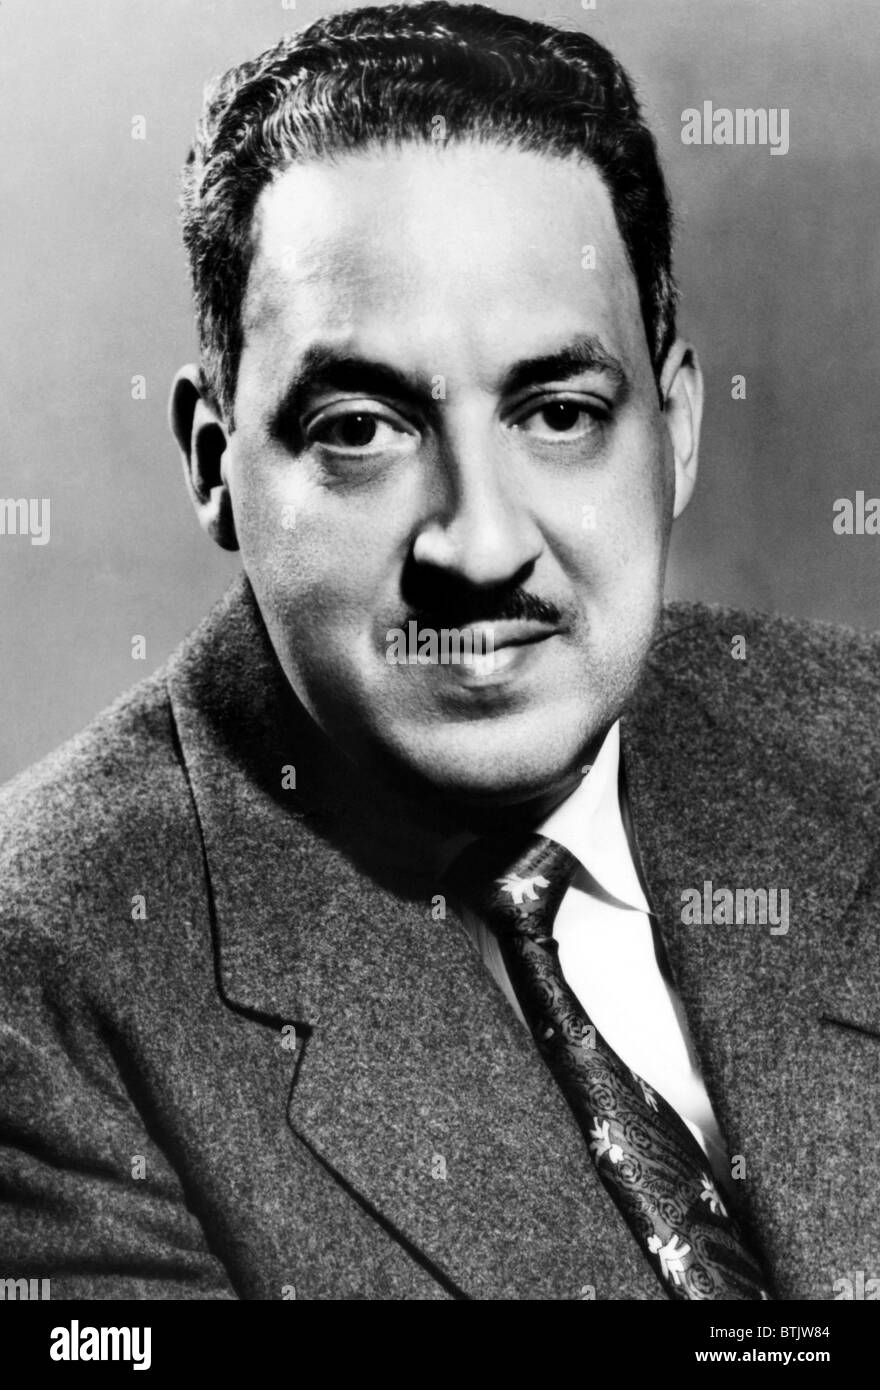 Thurgood Marshall, (1908-1993), Associate Justice of the United States Supreme Court from 1967-1991, c. 1960. - Stock Image